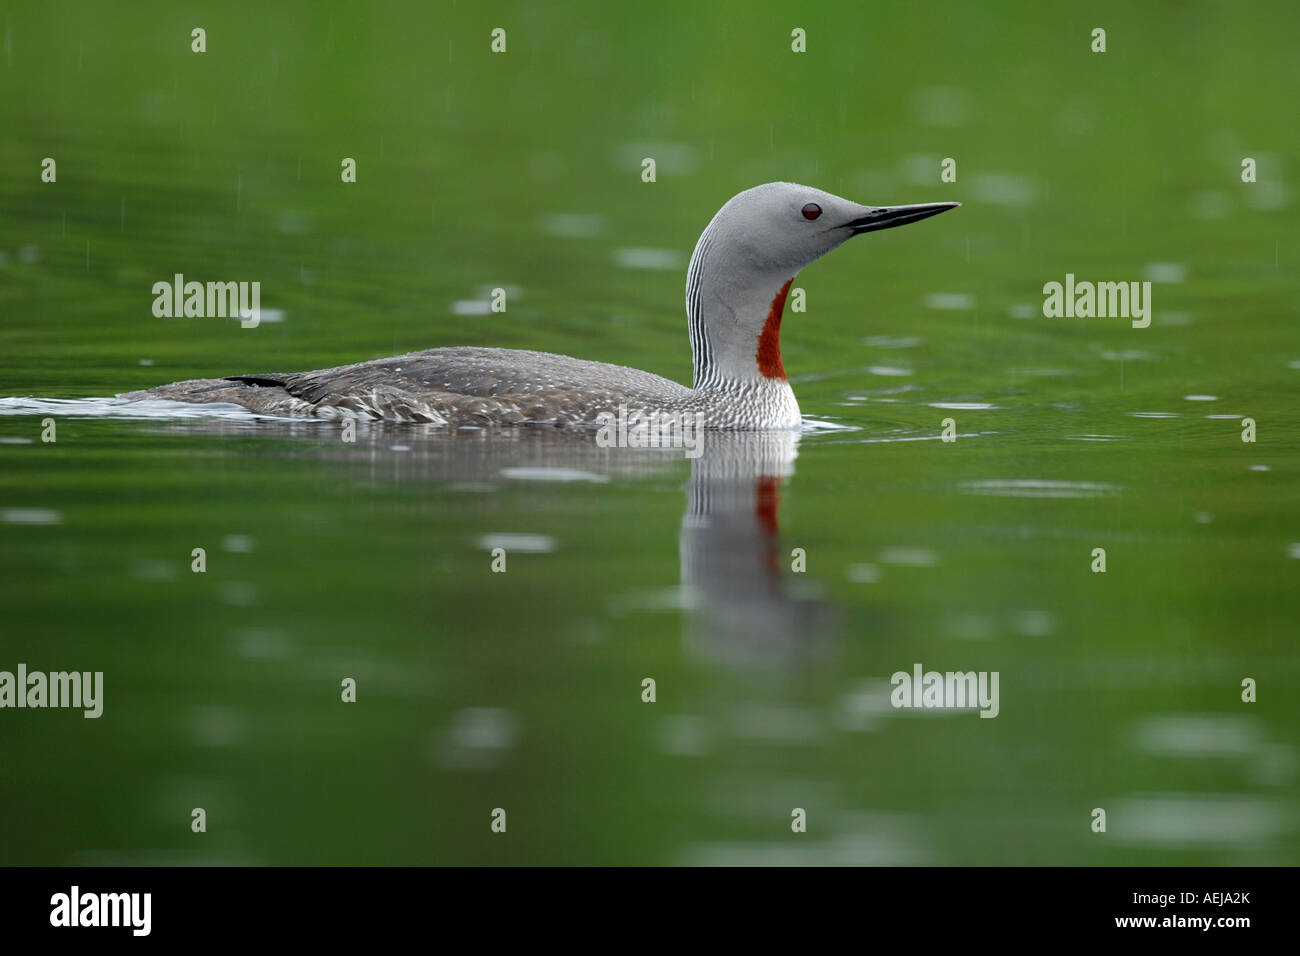 Red-throated Diver (Gavia stellata), swimming, drizzle - Stock Image